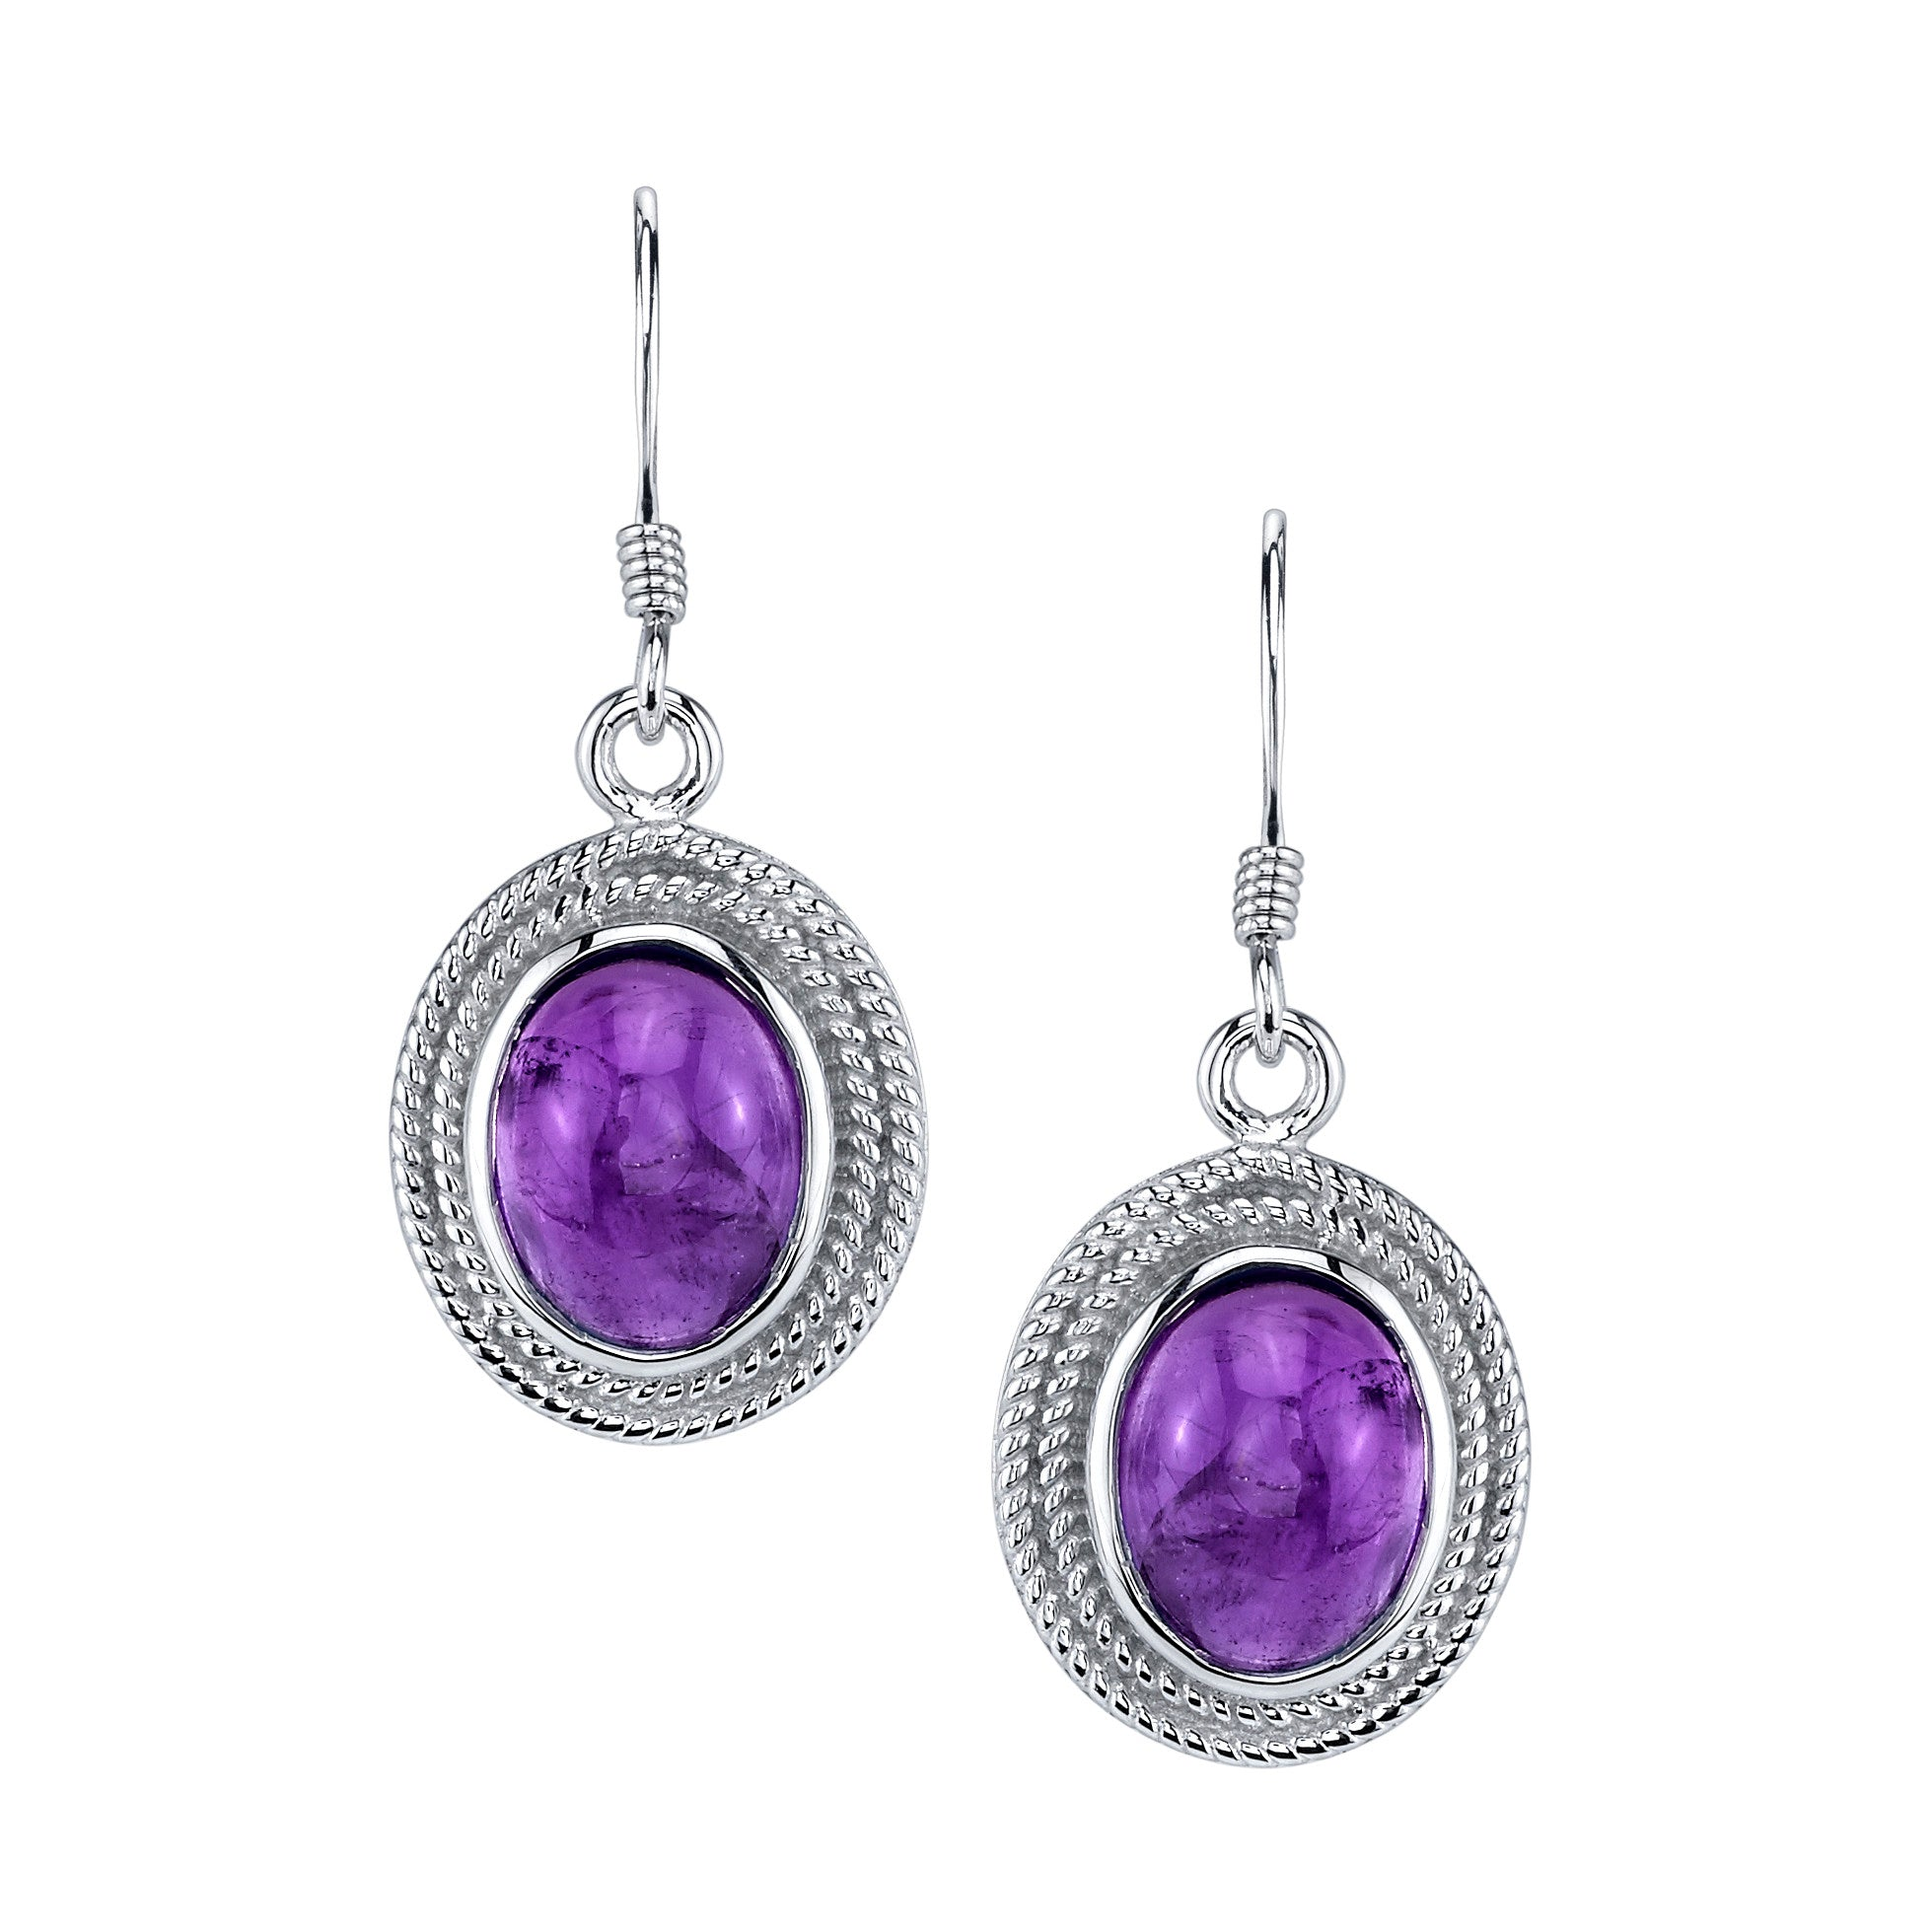 Oval Cabochon Amethyst Drop Earrings